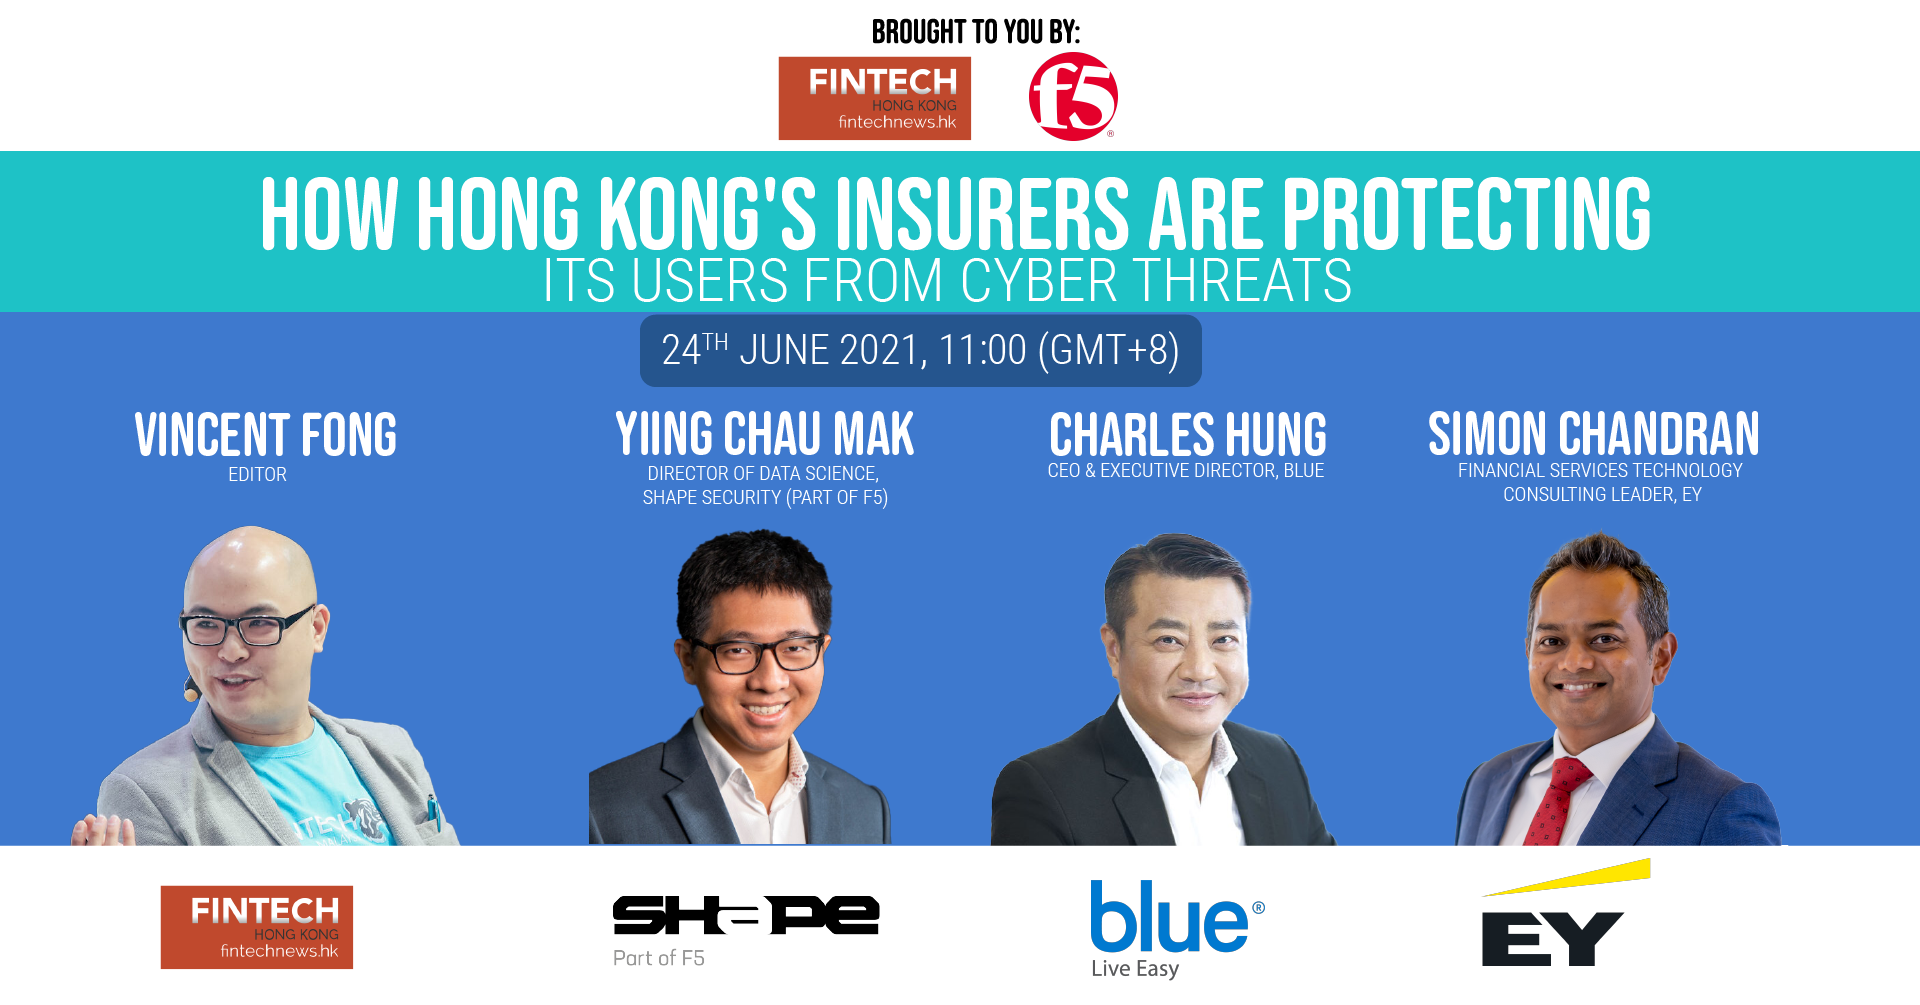 How Hong Kong's Insurers Are Protecting Its Users from Cyber Threats FB